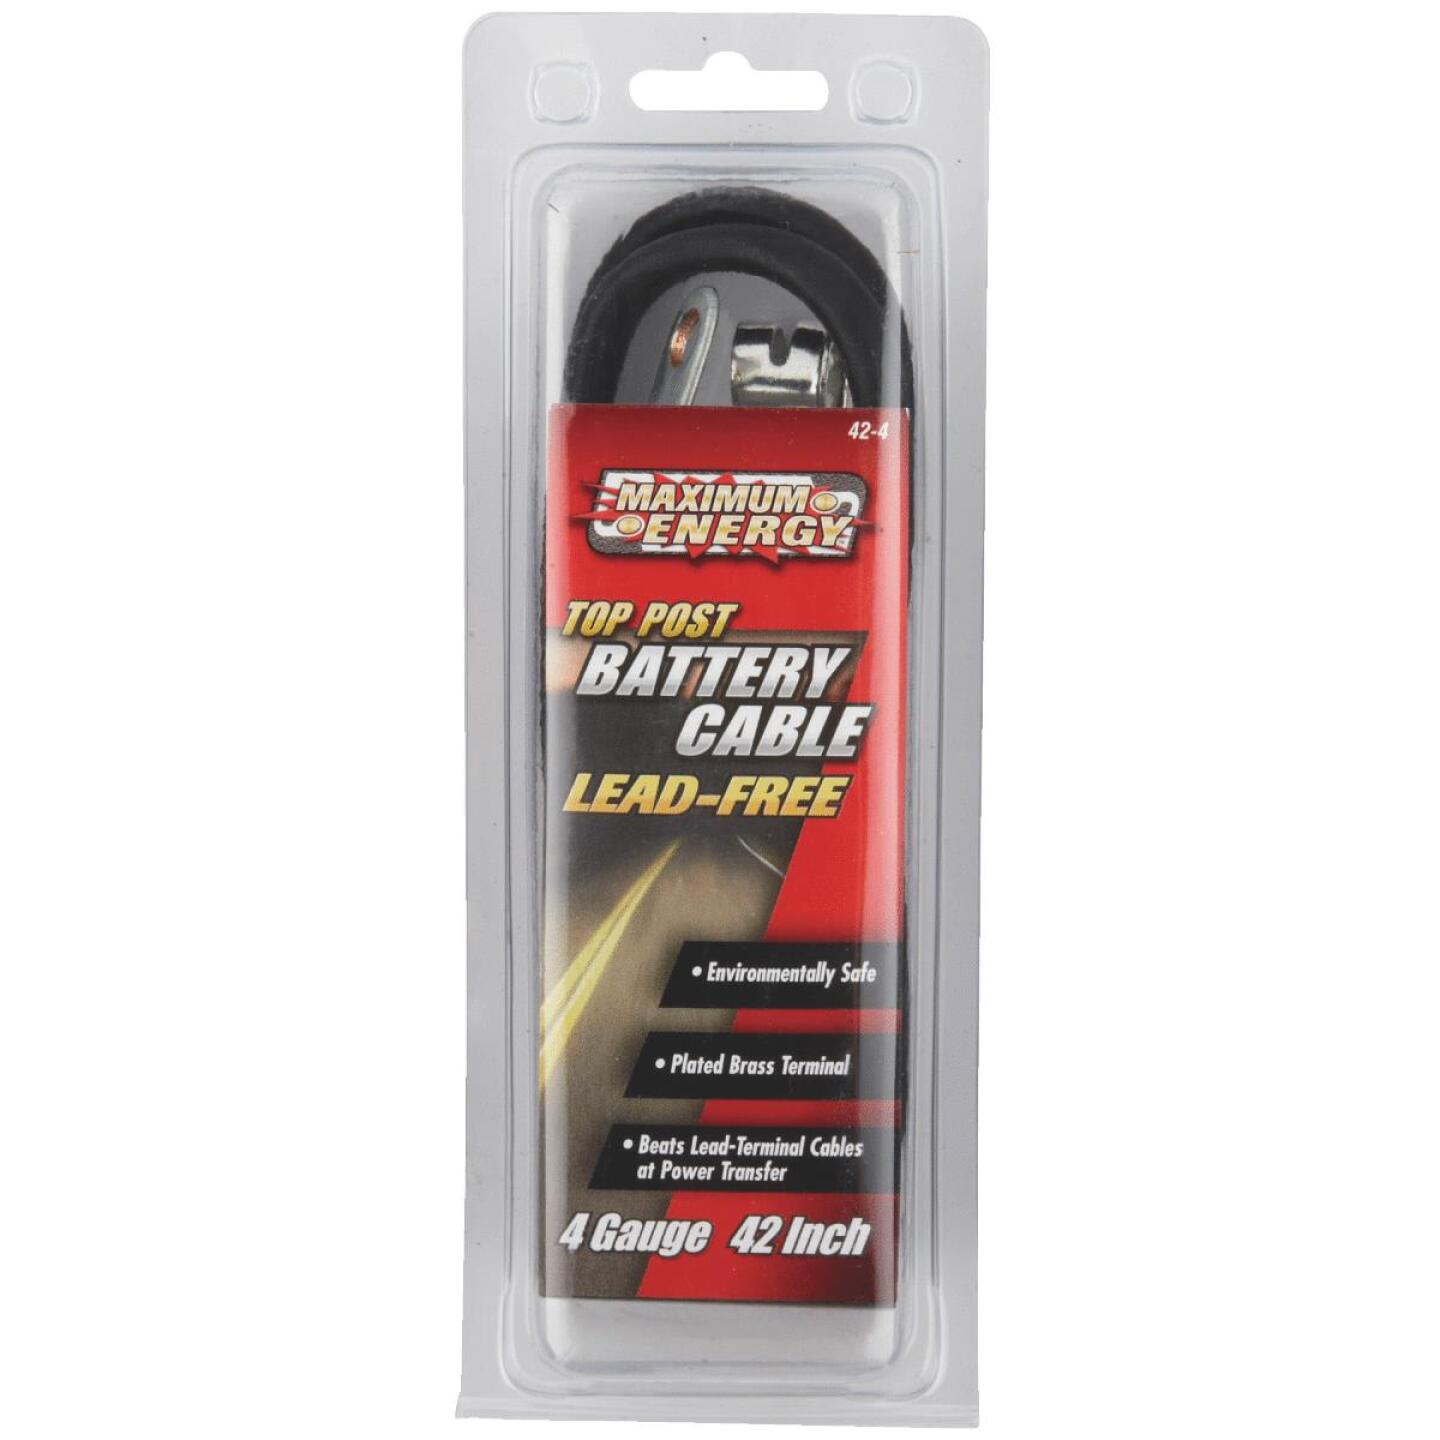 """Road Power 4 Gauge 42"""" Top Post Battery Cable Image 2"""